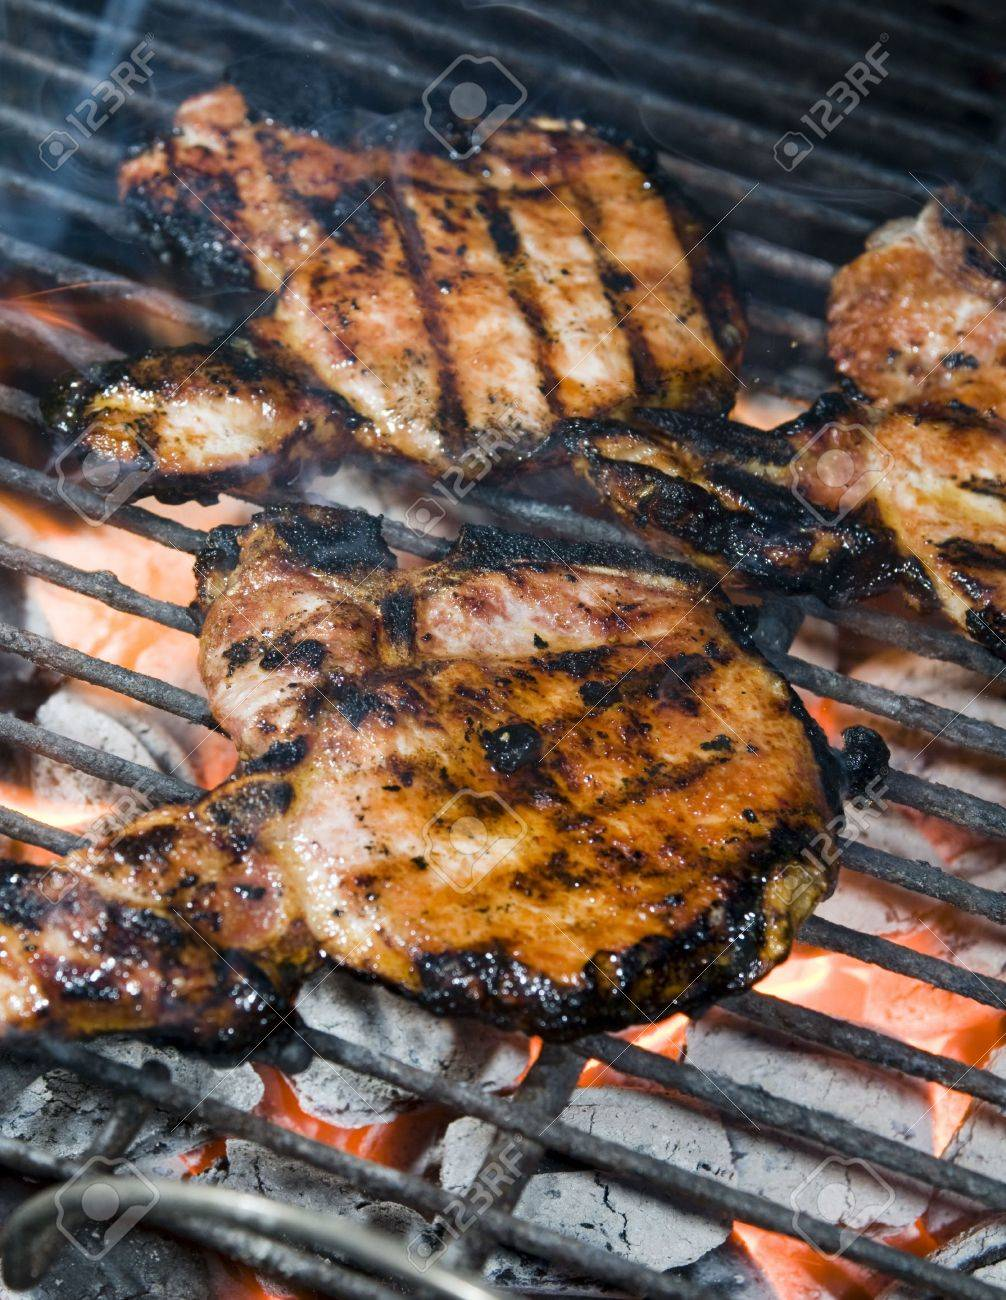 Thin Center Cut Bone In Pork Chops Cooking On A Charcoal Barbecue Grill With Grill Marks